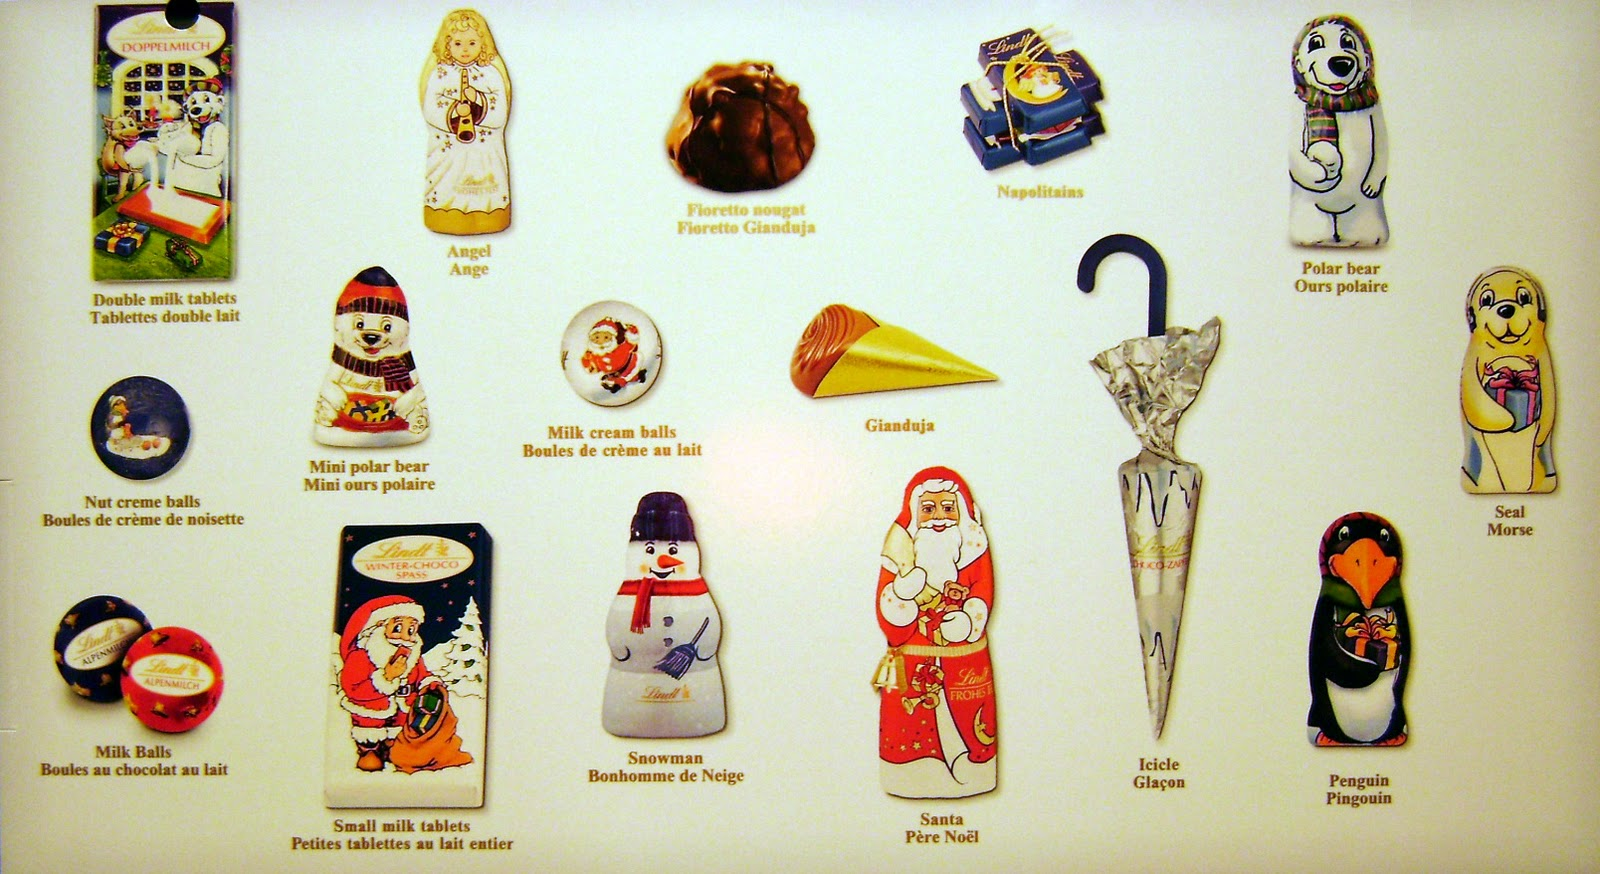 Lindt Chocolate Advent Calendar The chocolate cult: lindt chocolate ...